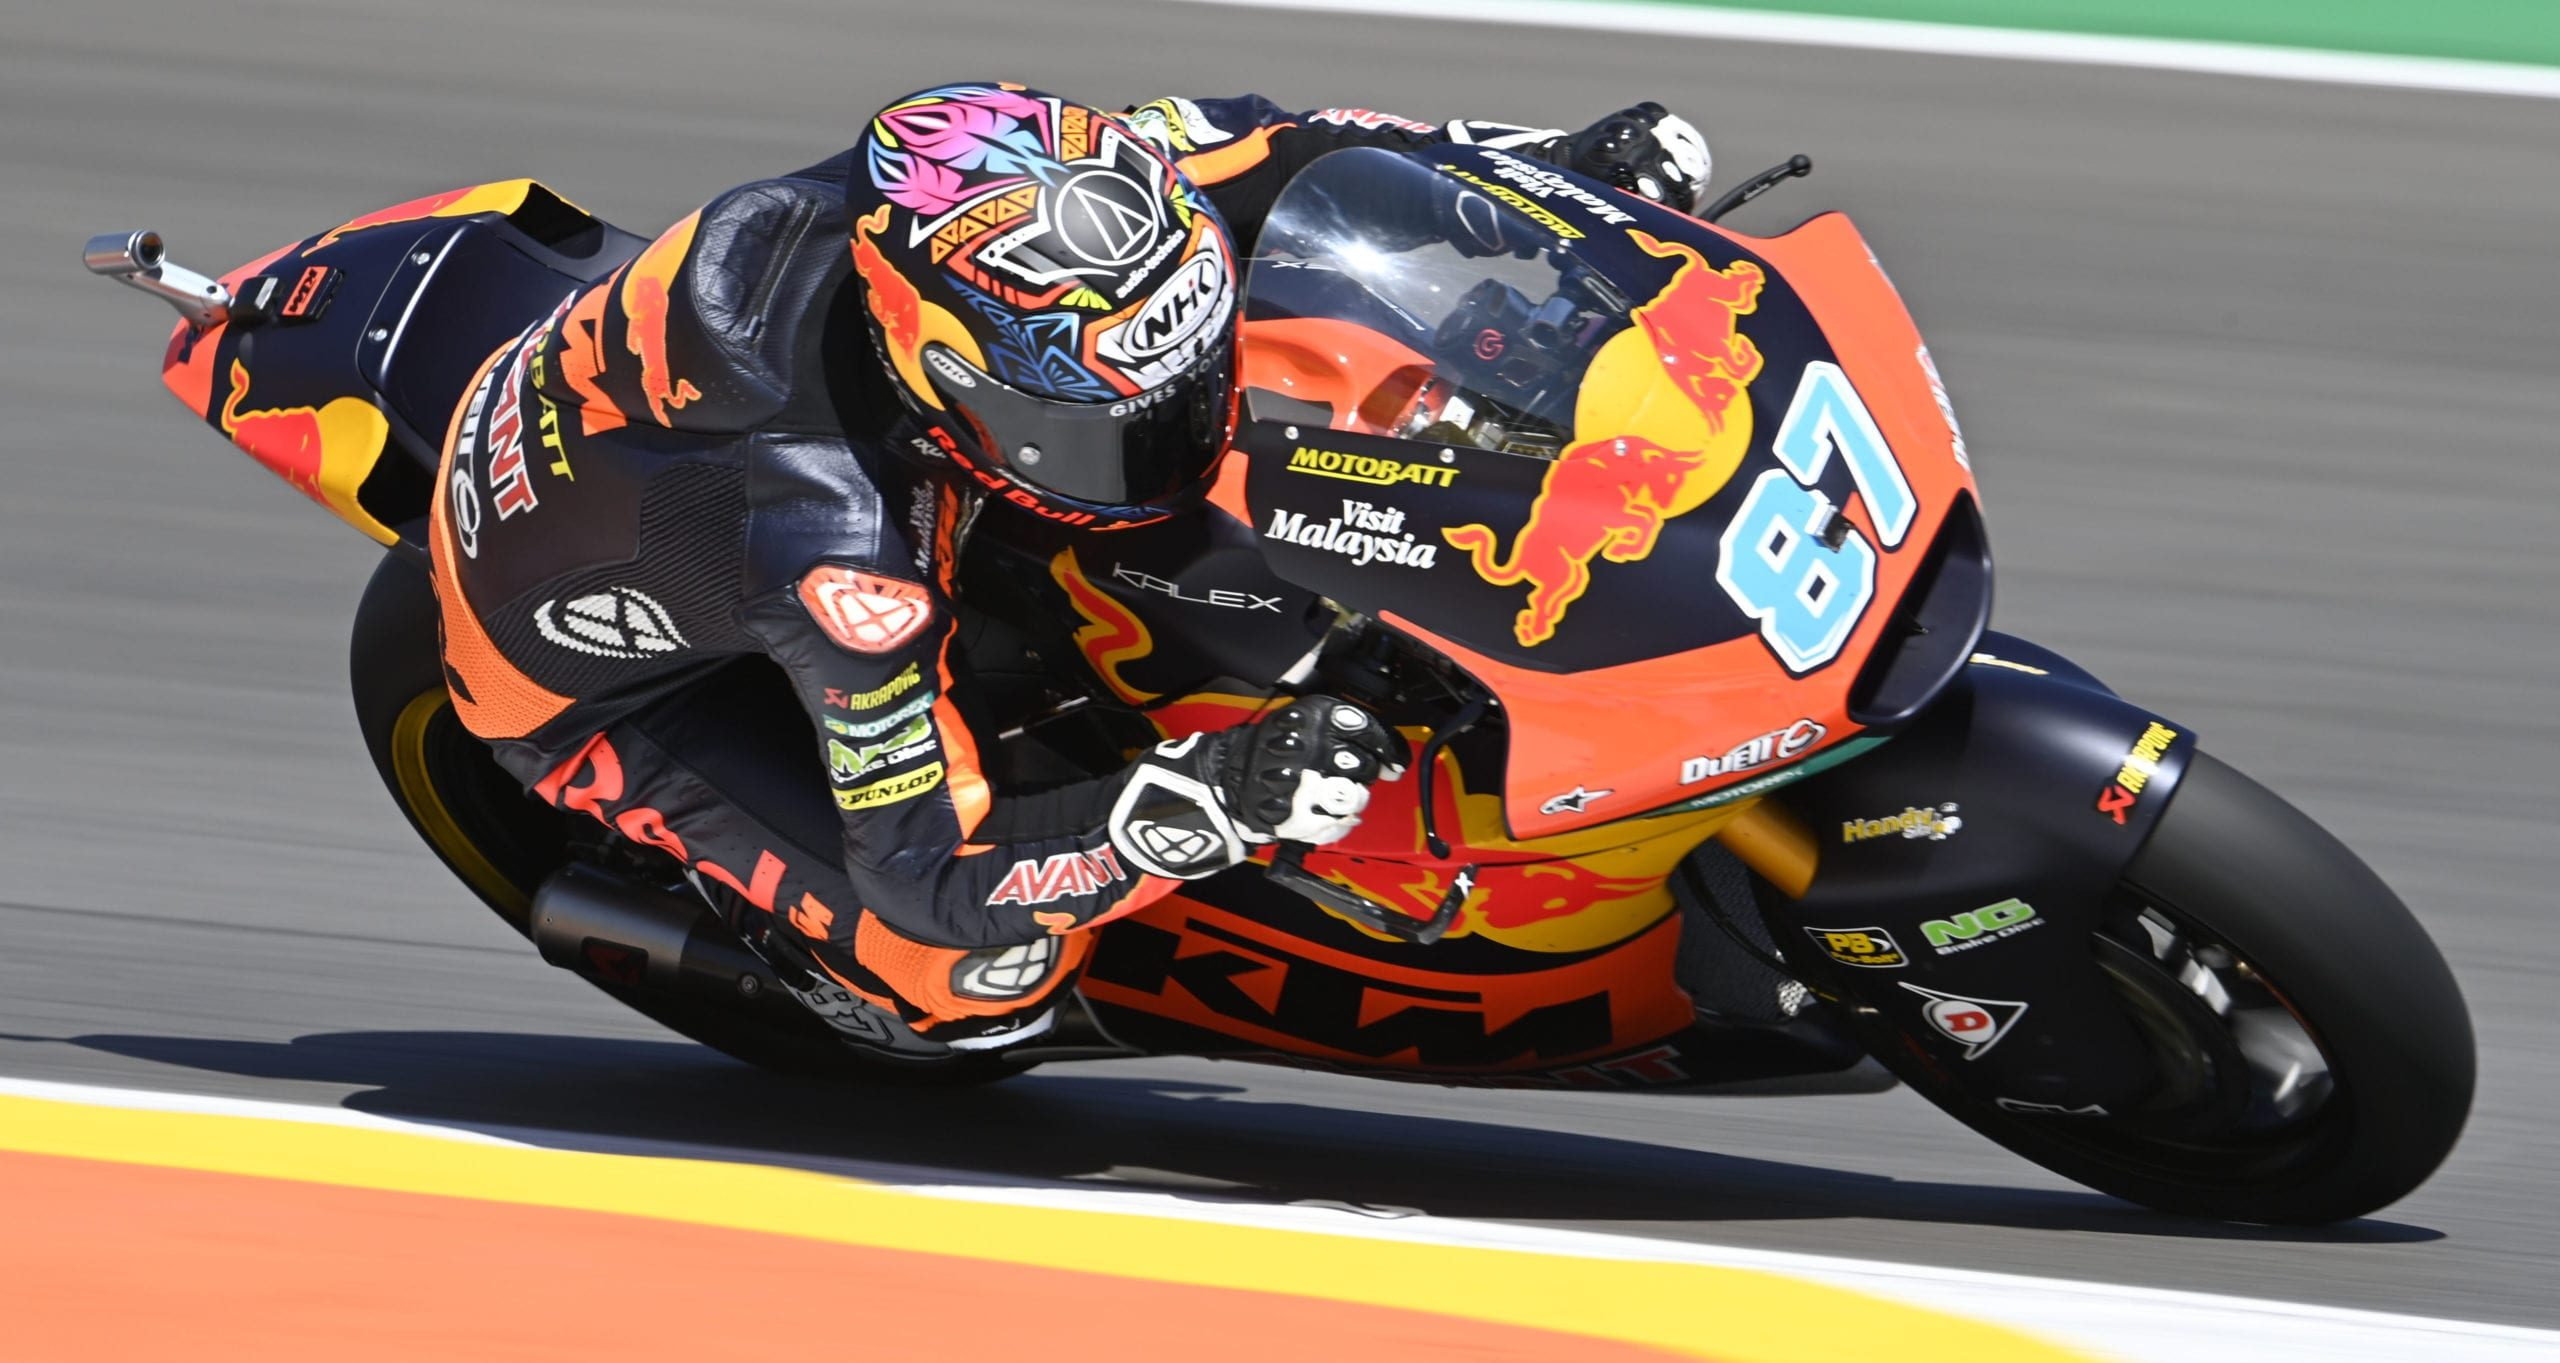 Moto2 Portimao Warm Up Results: Remy Gardner breaks lap record - Everything Moto Racing